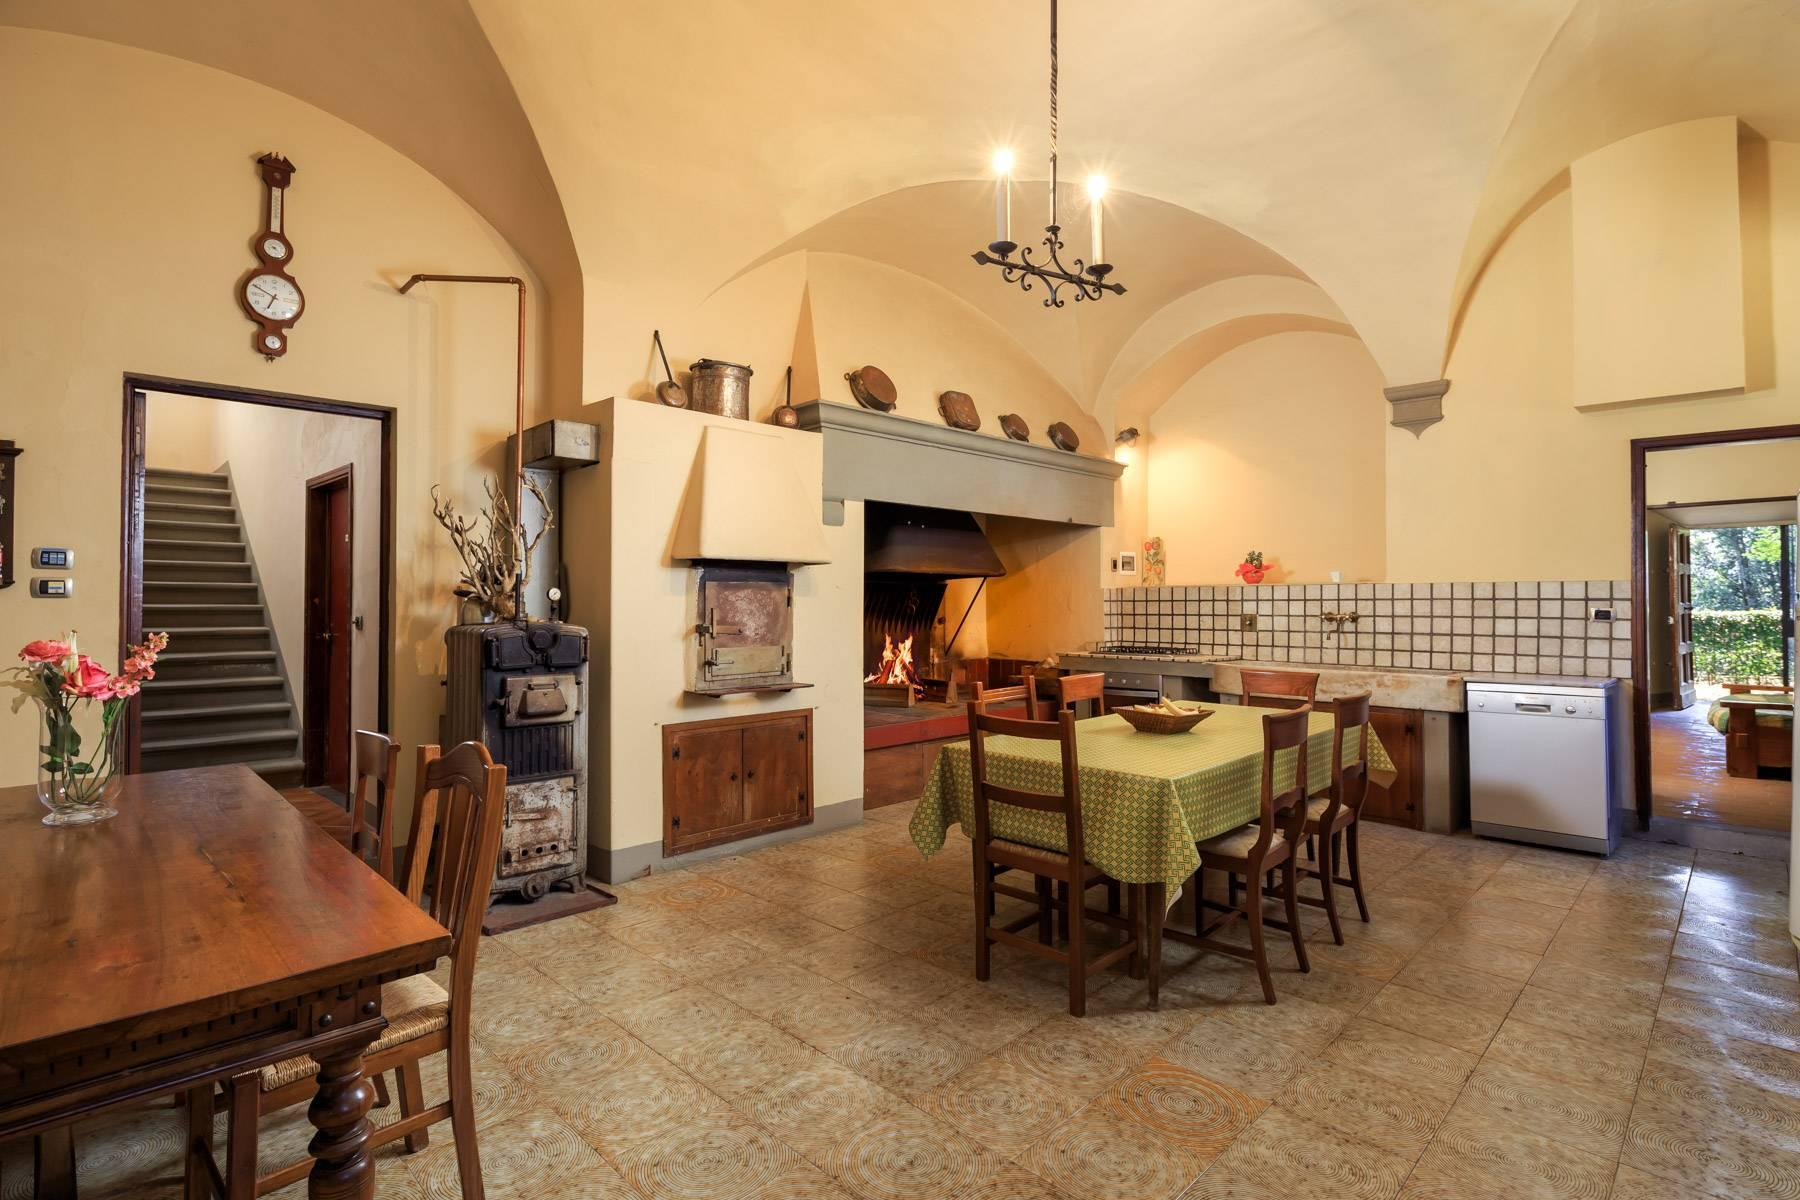 Luxurious Castle for Sale on the Florentine Hills - 7